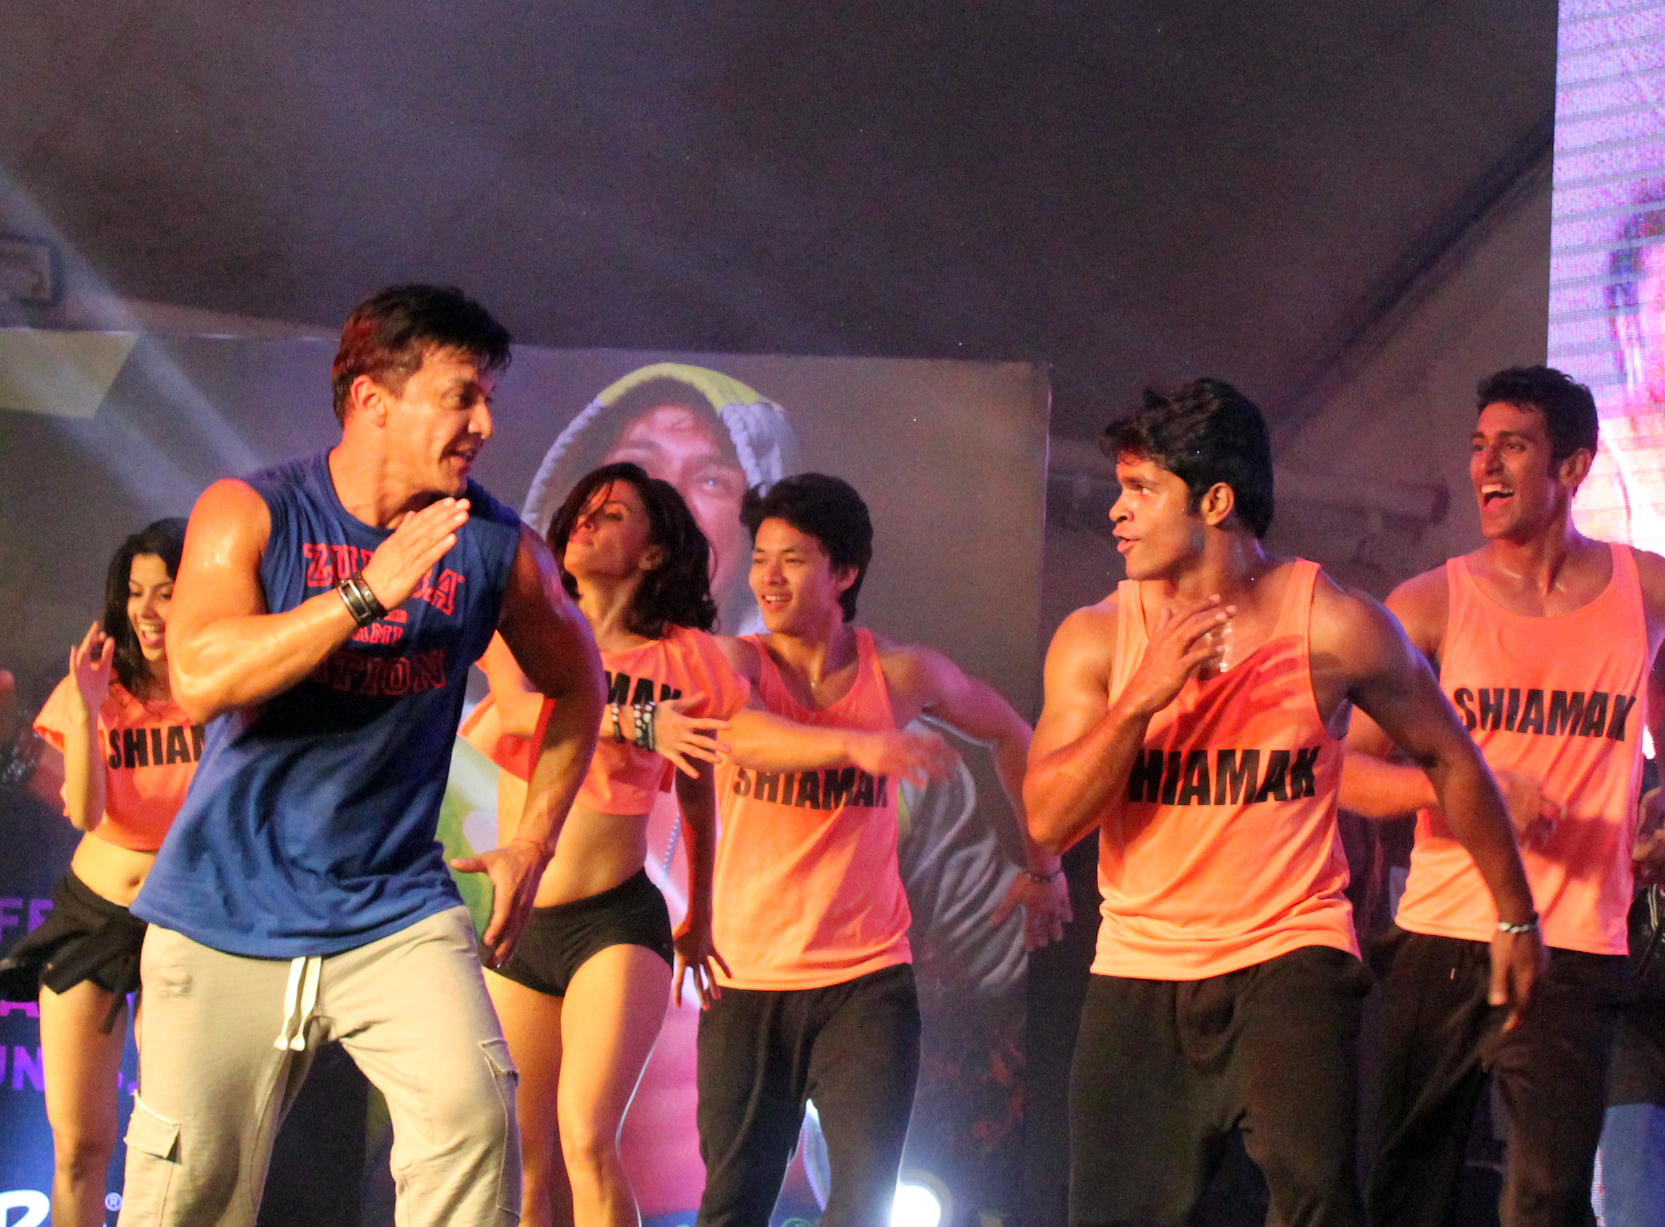 Beto Perez with SHIAMAK instructors leading a song at the Zumba party